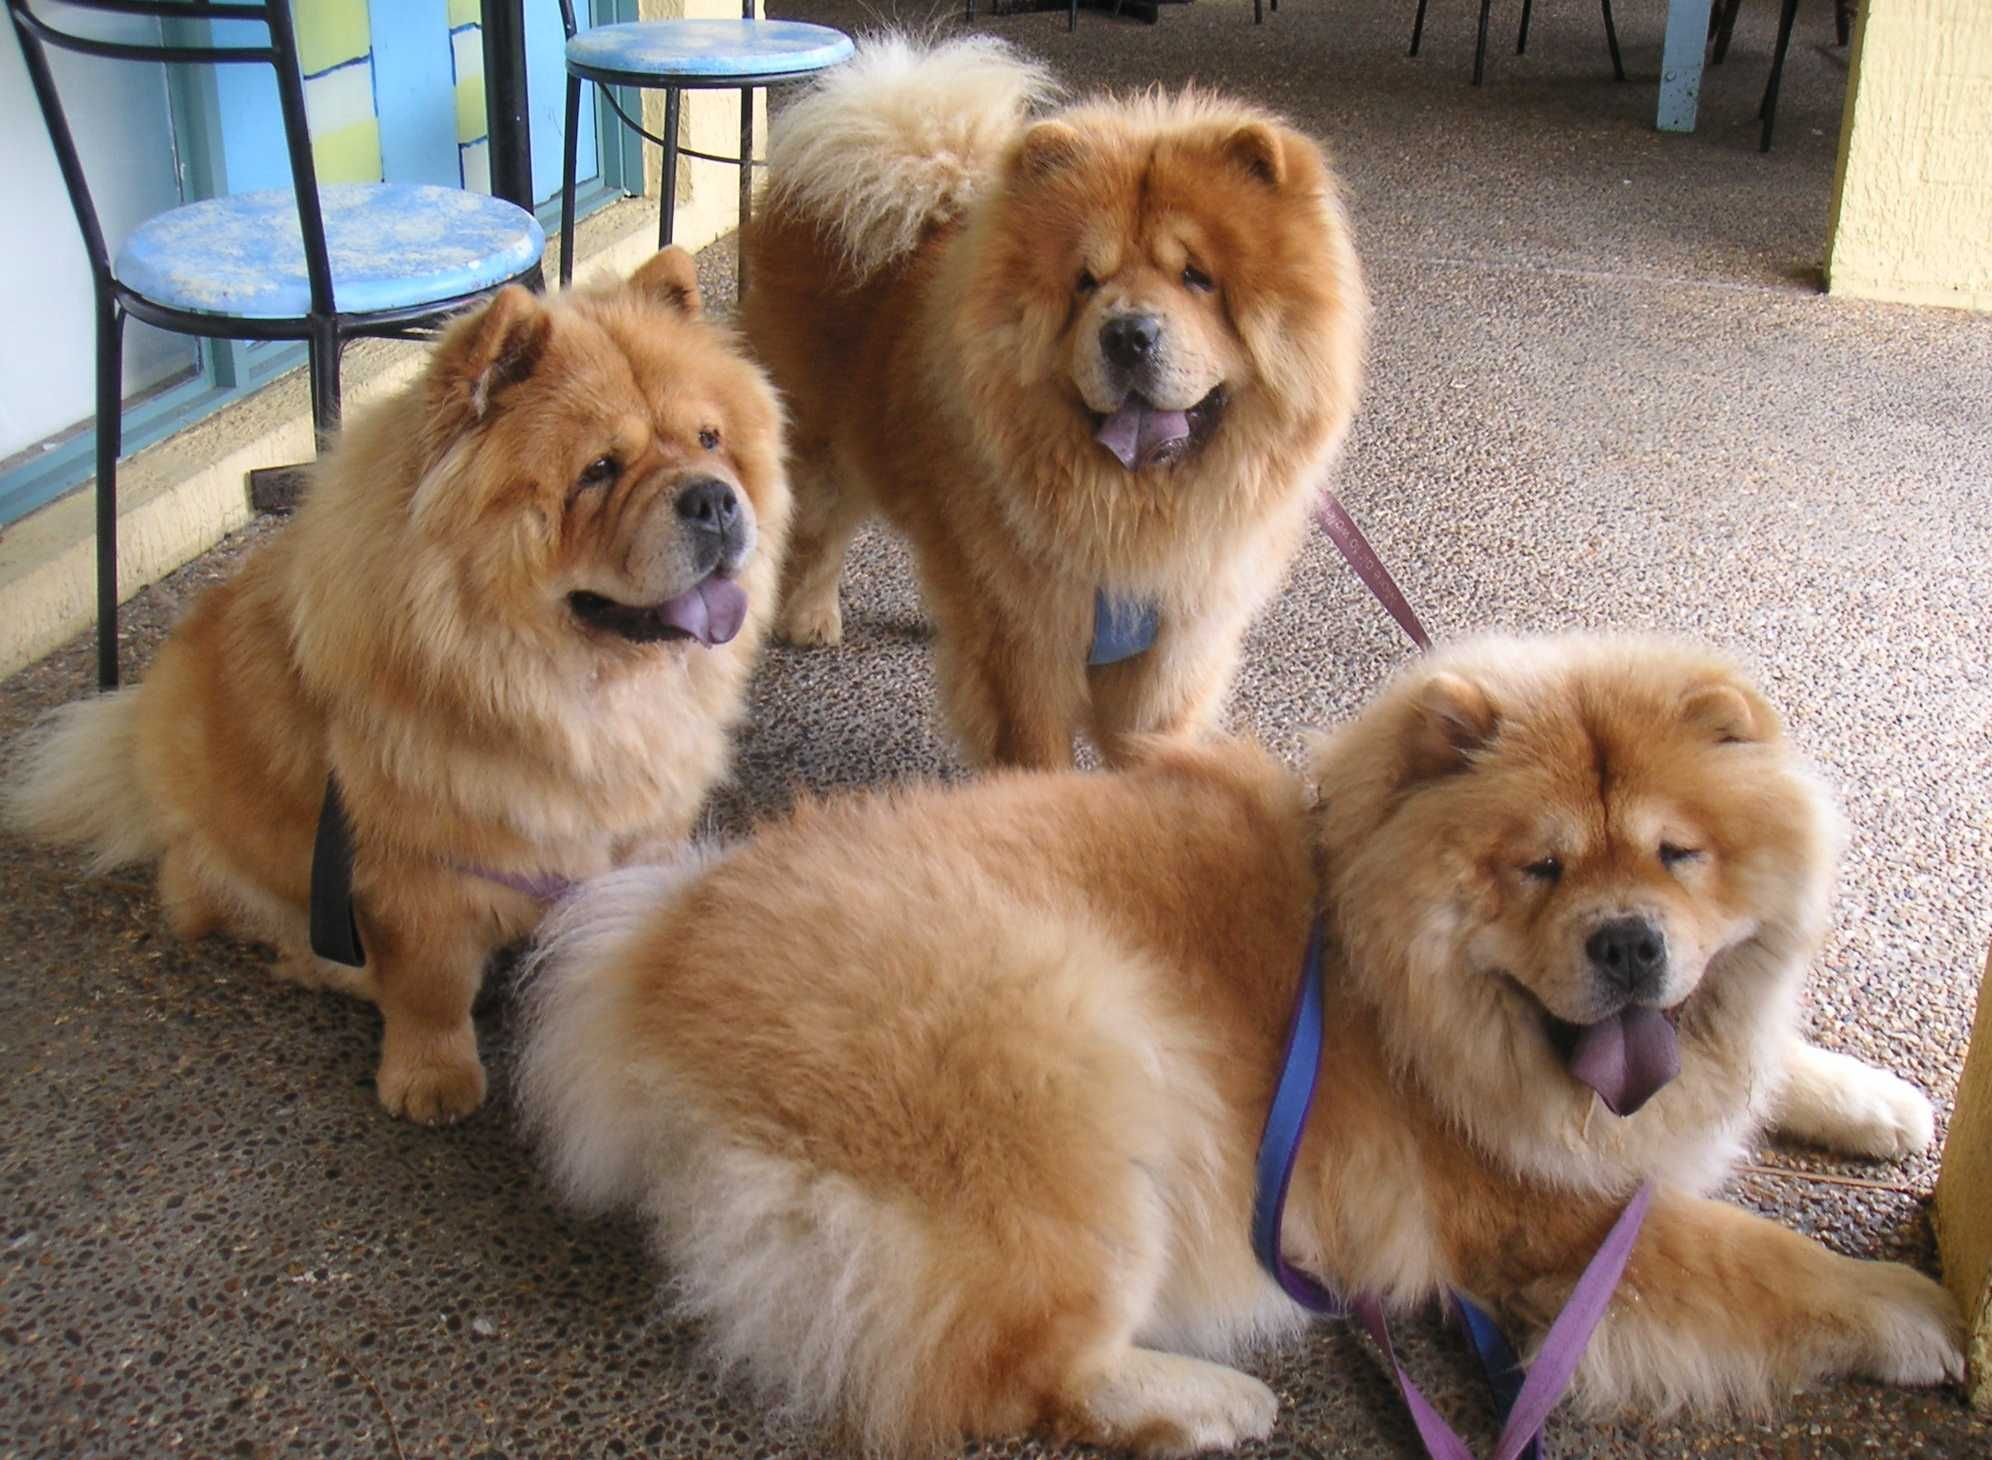 Three Adult Chow Chow Dogs Dogs Animal Chien Animaux